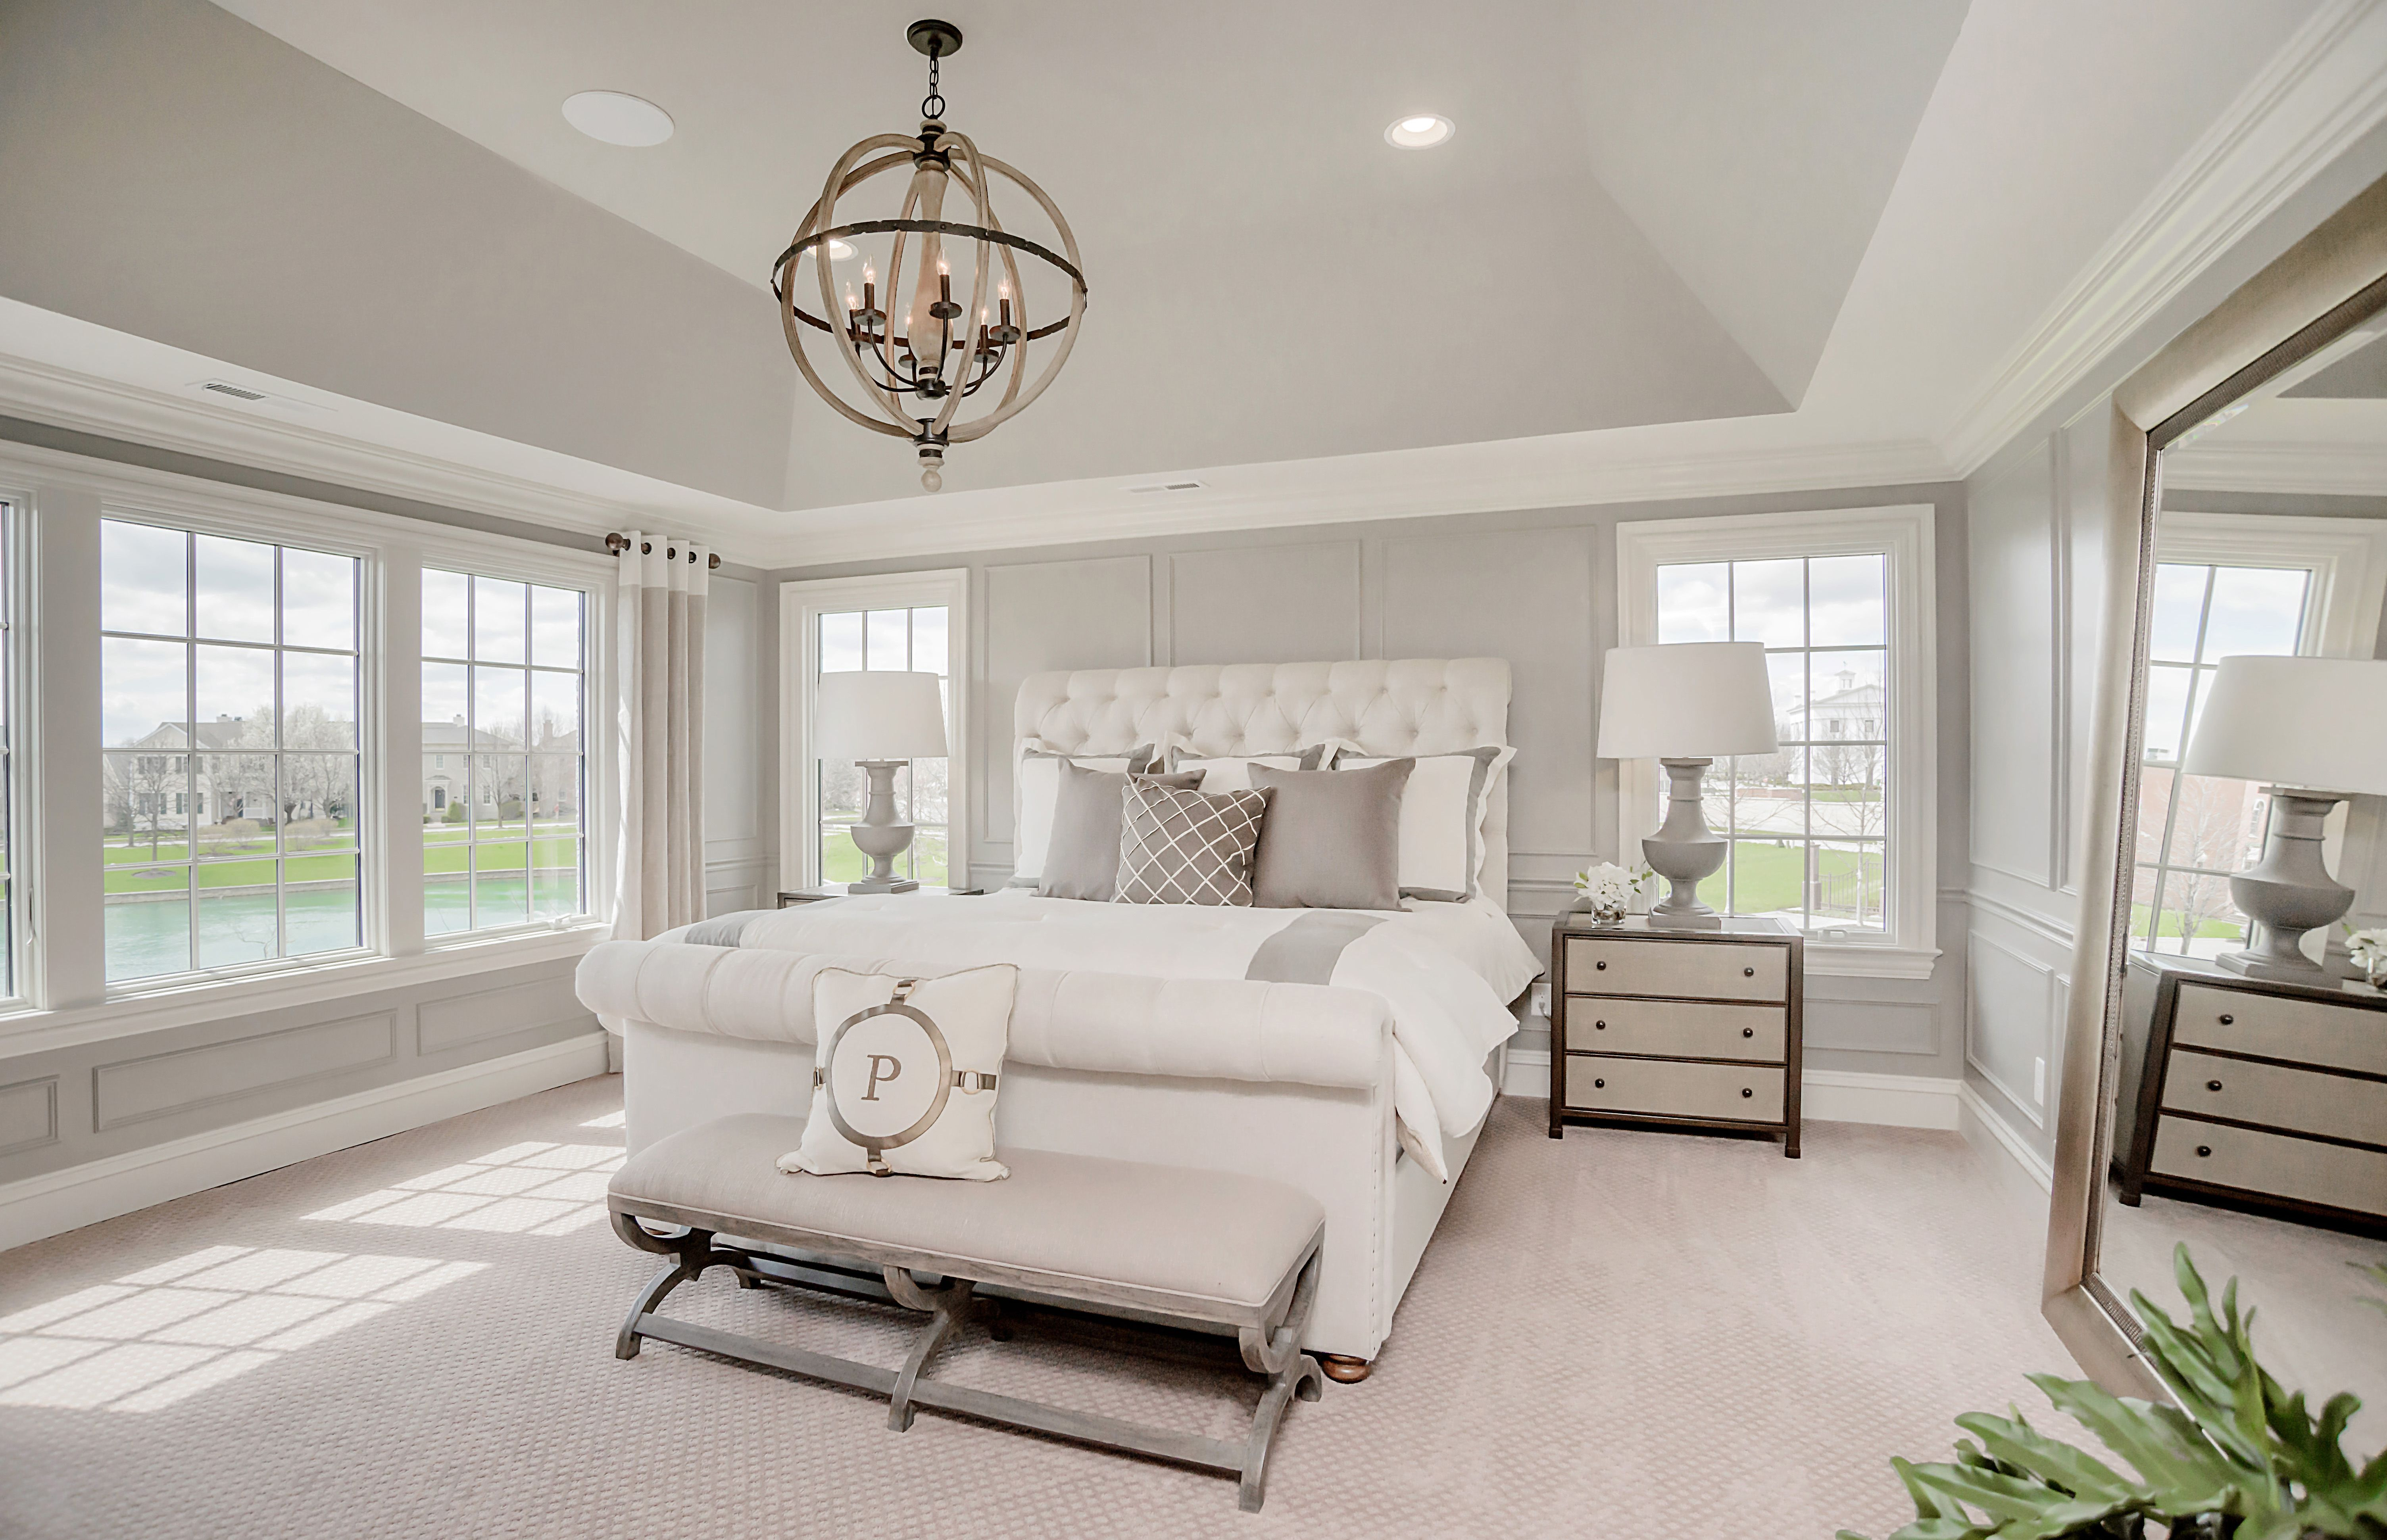 Crisp And Clean This Comfy Bedroom Is The Ideal Retreat Pulte Homes Master Bedroom Lighting Remodel Bedroom Master Bedrooms Decor